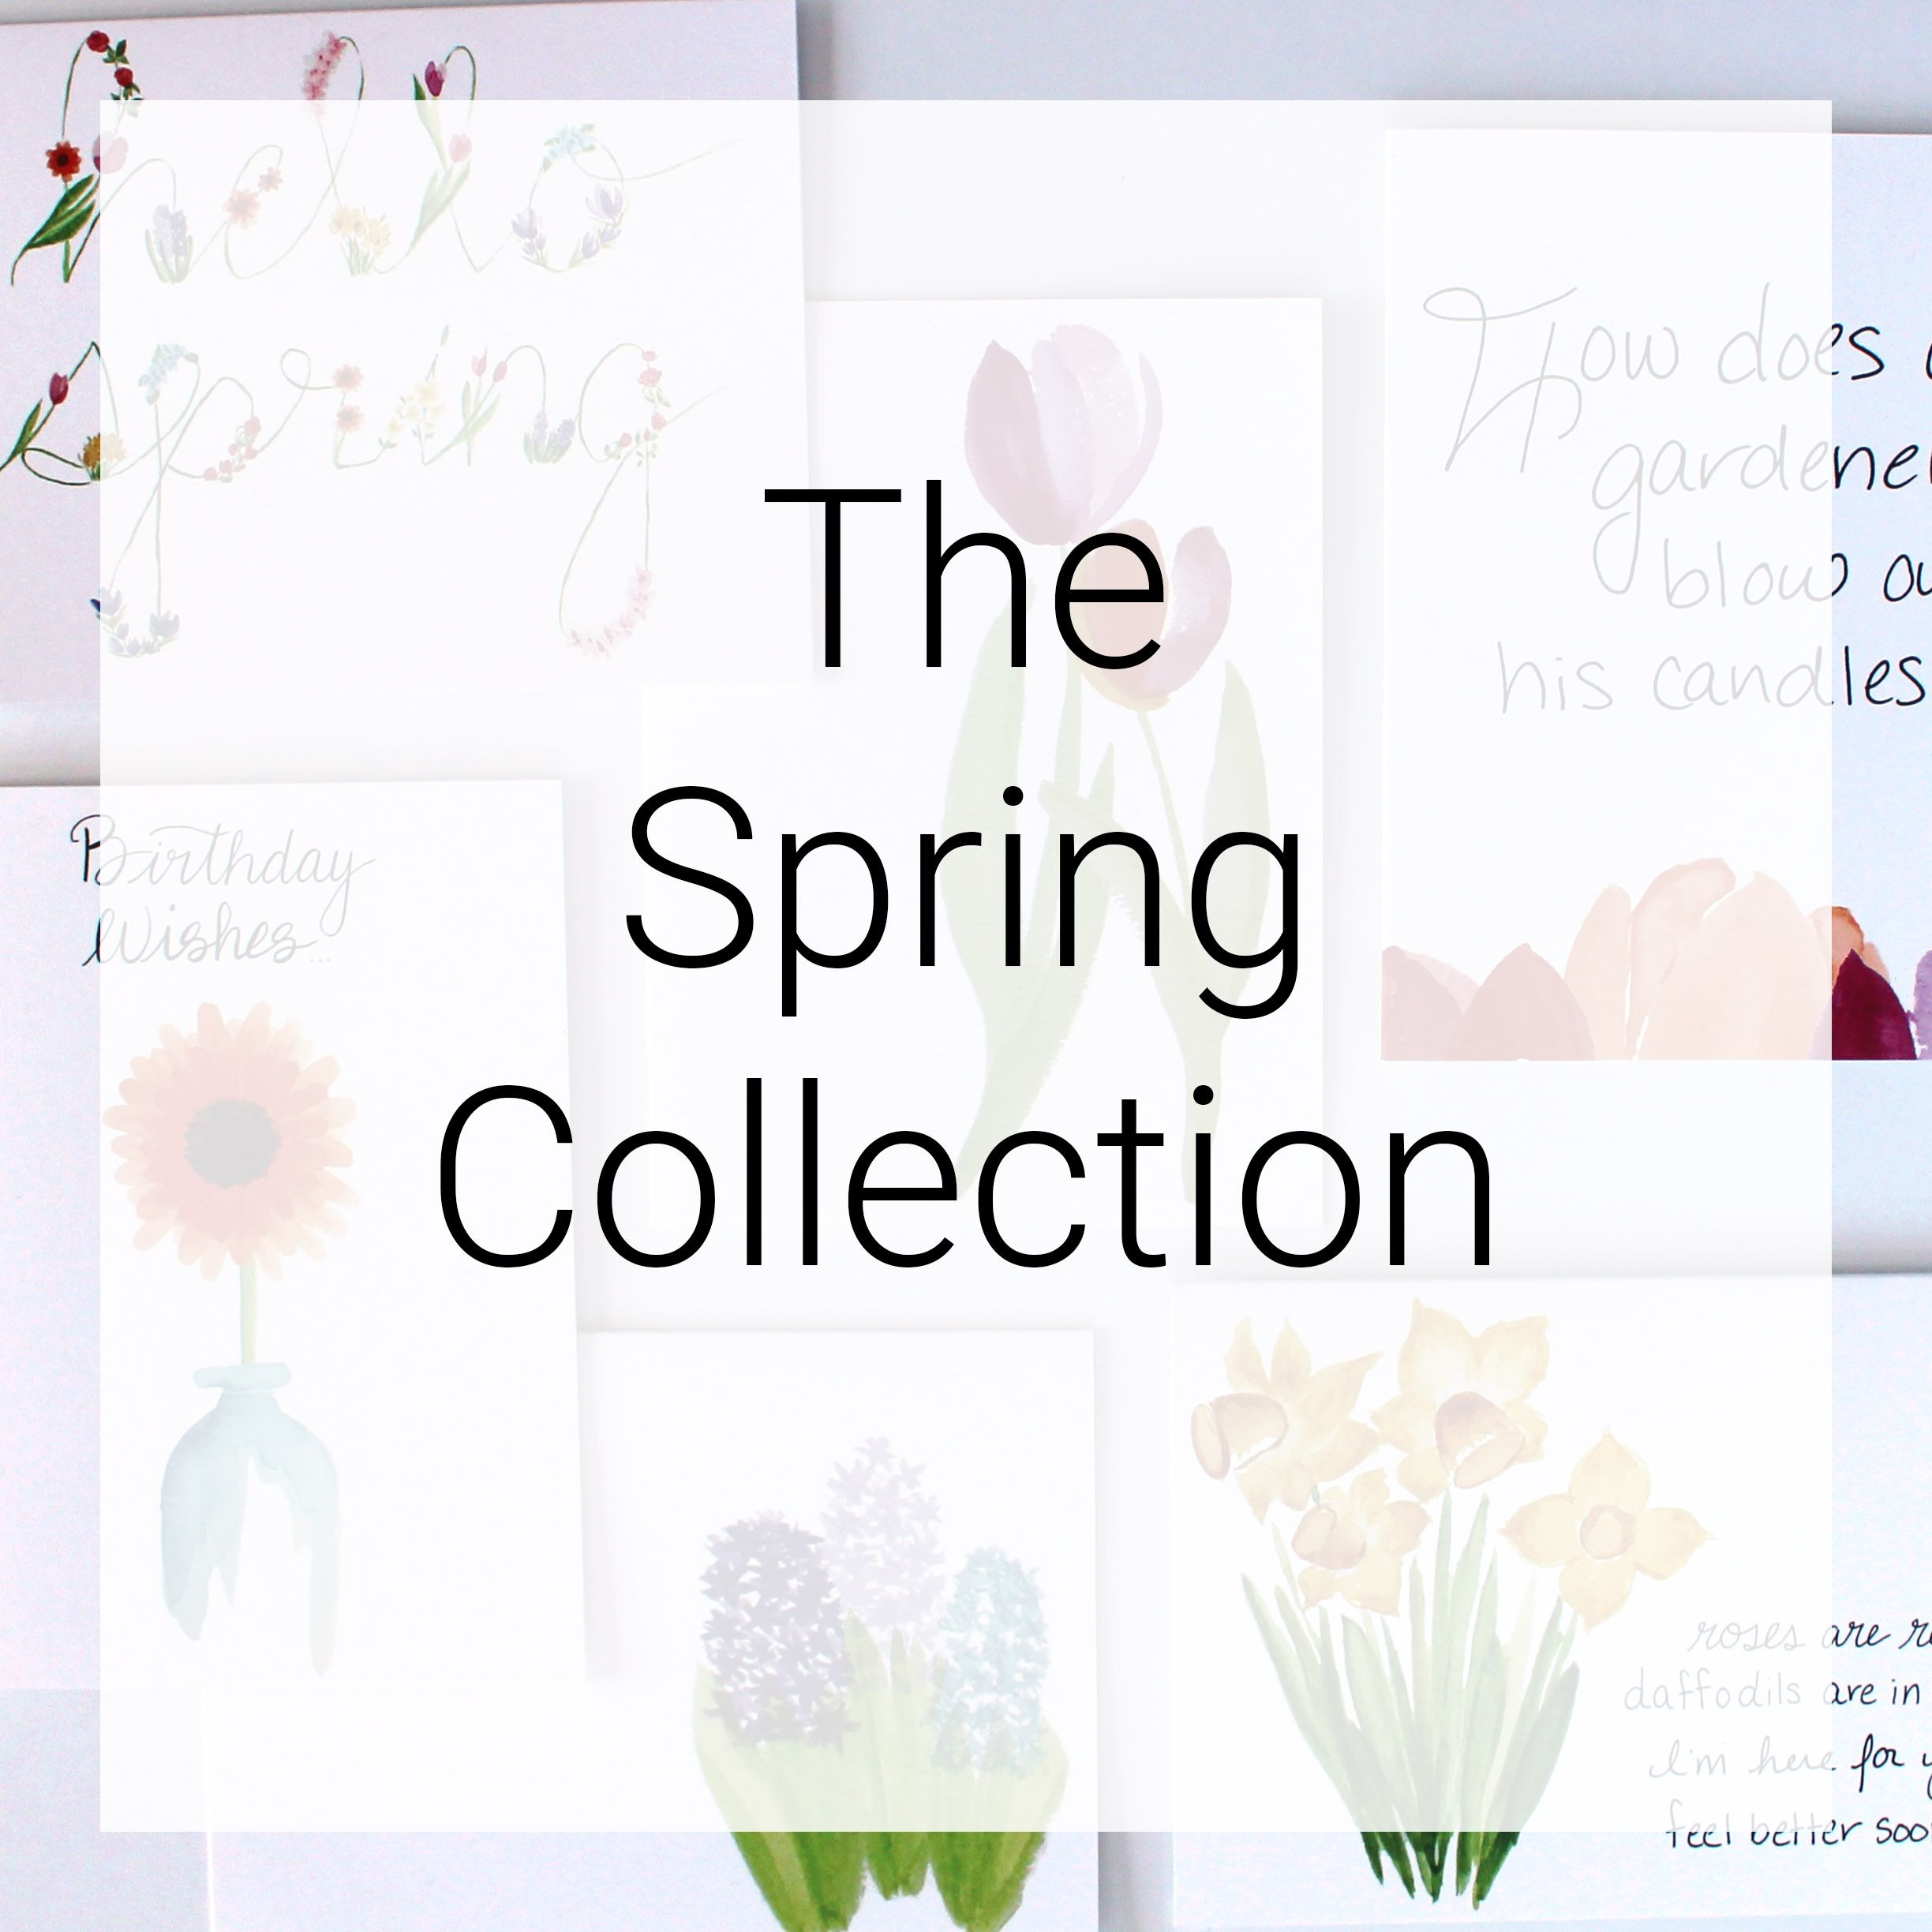 The spring greeting card collection cafe notes company